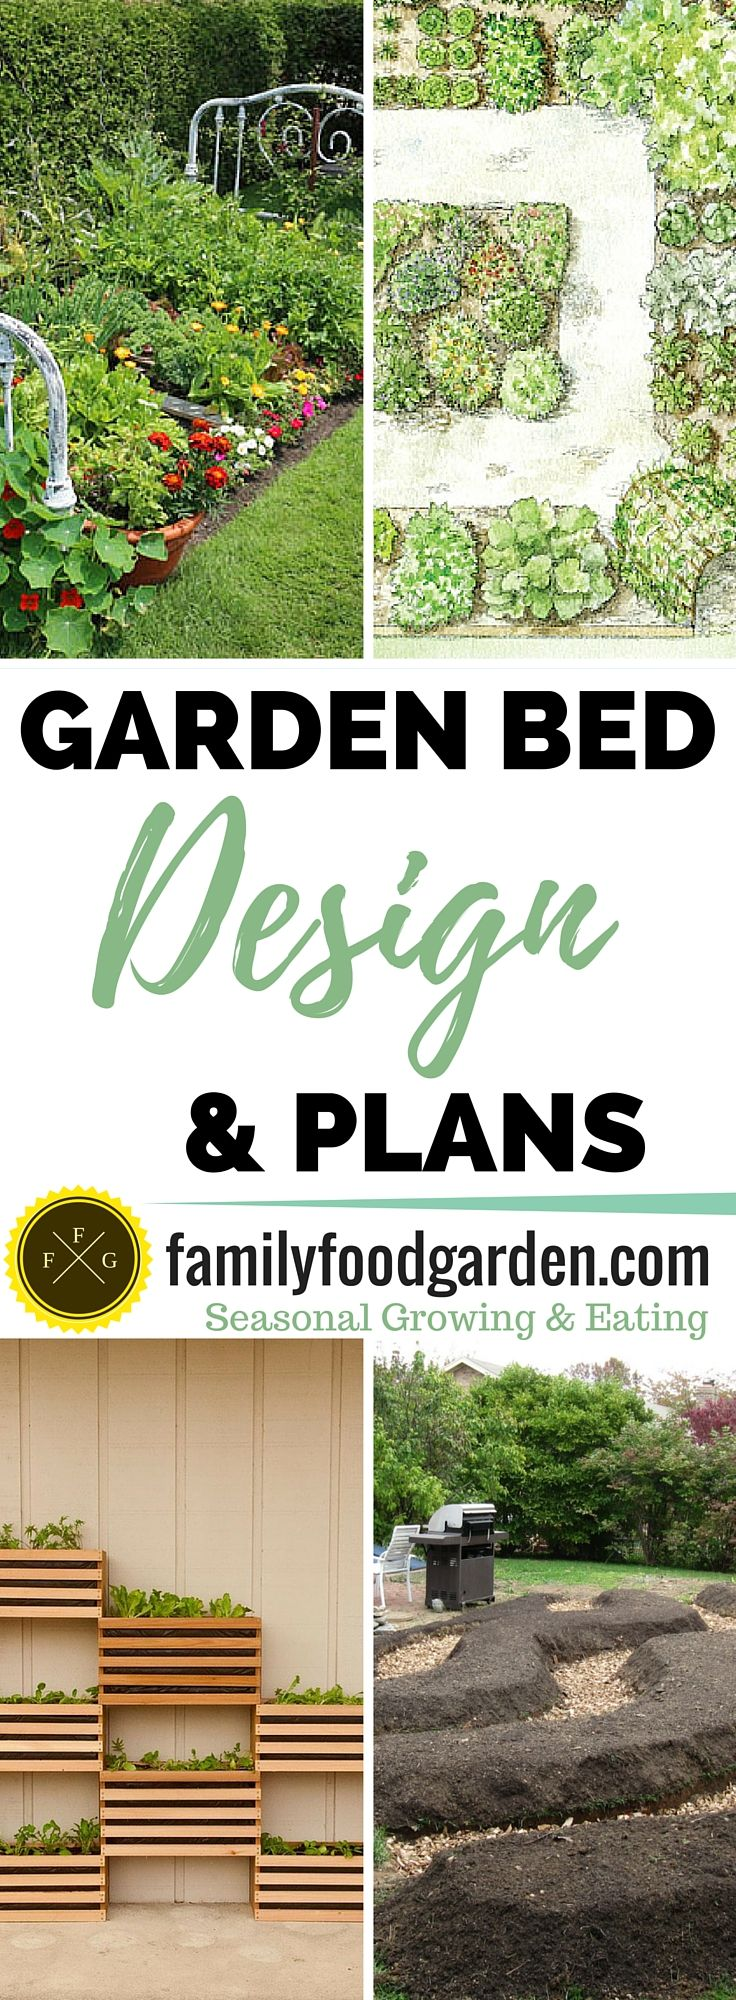 102 best images about garden on pinterest gardens raised beds